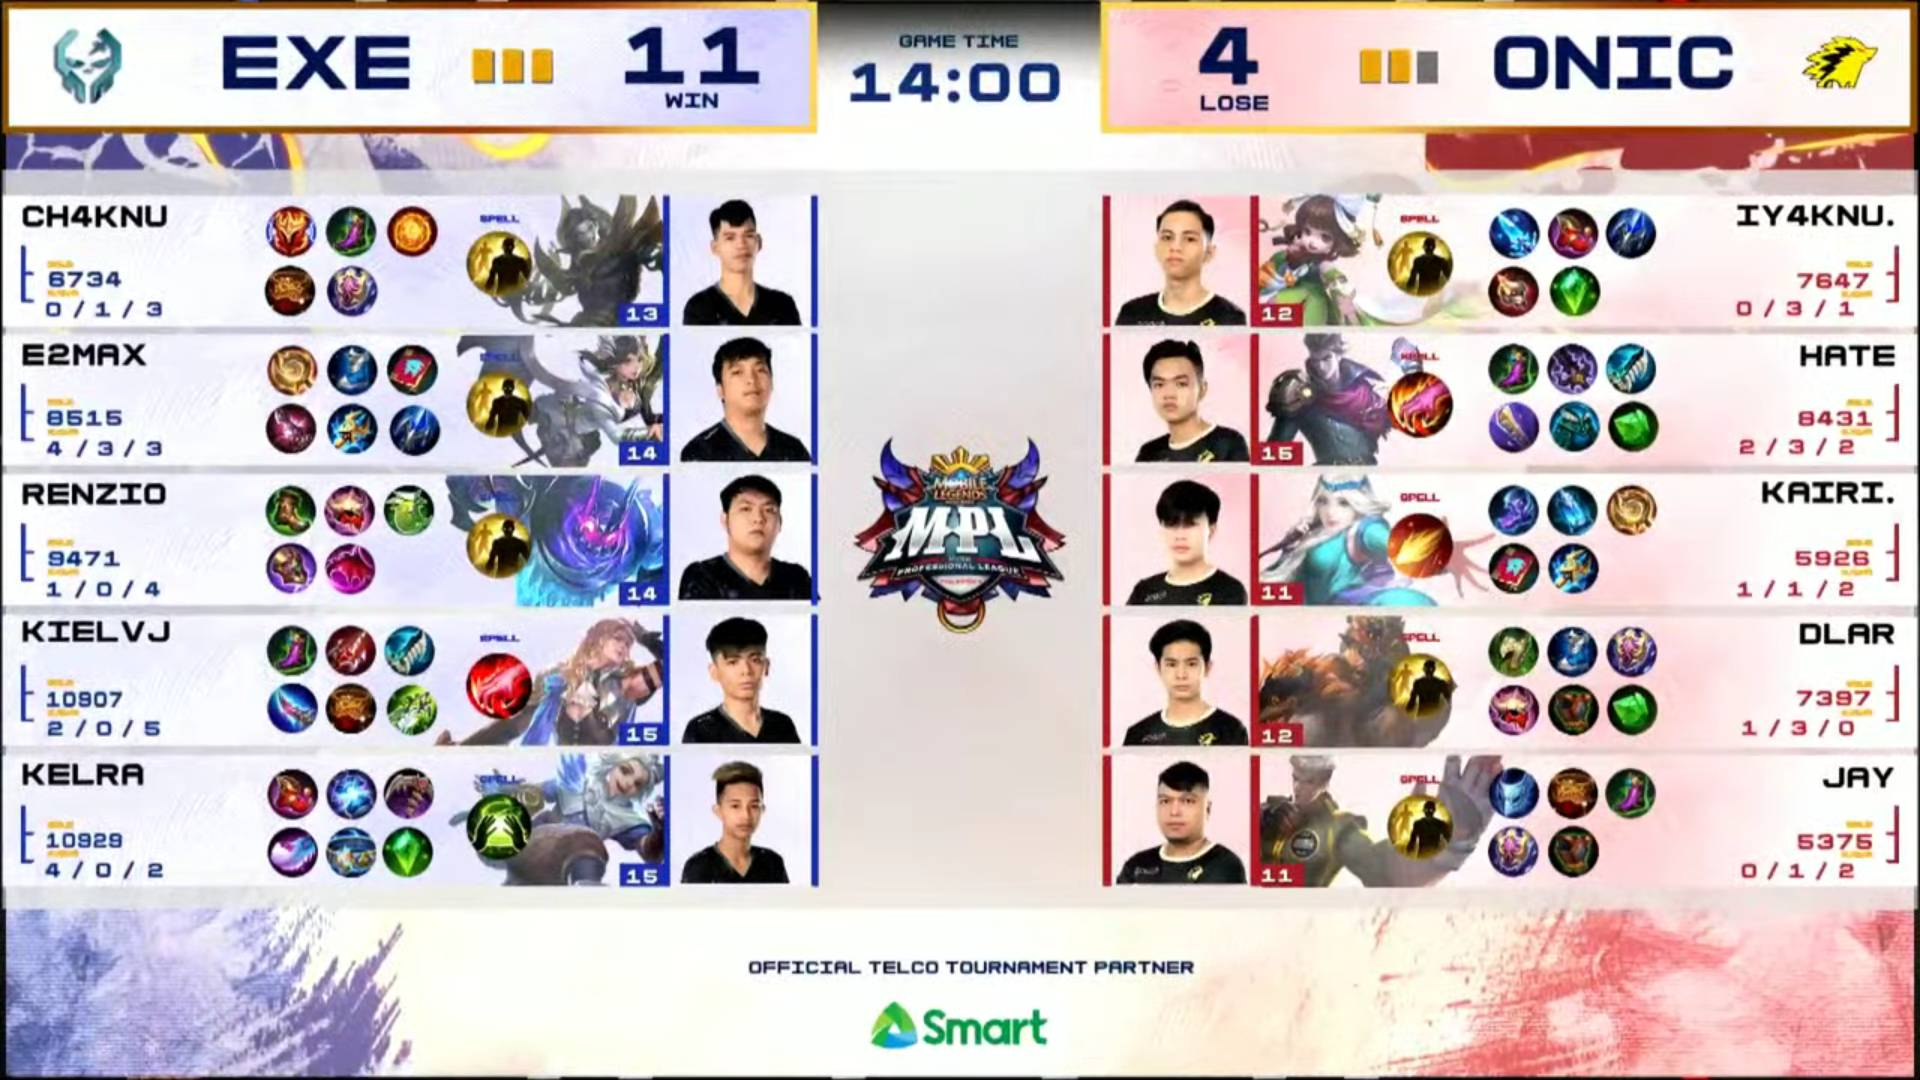 MPL-PH-Season-7-Execration-def-Onic-Game-5 Execration eliminates Hate, ONIC PH in MPL PH playoffs ESports Mobile Legends MPL-PH News  - philippine sports news